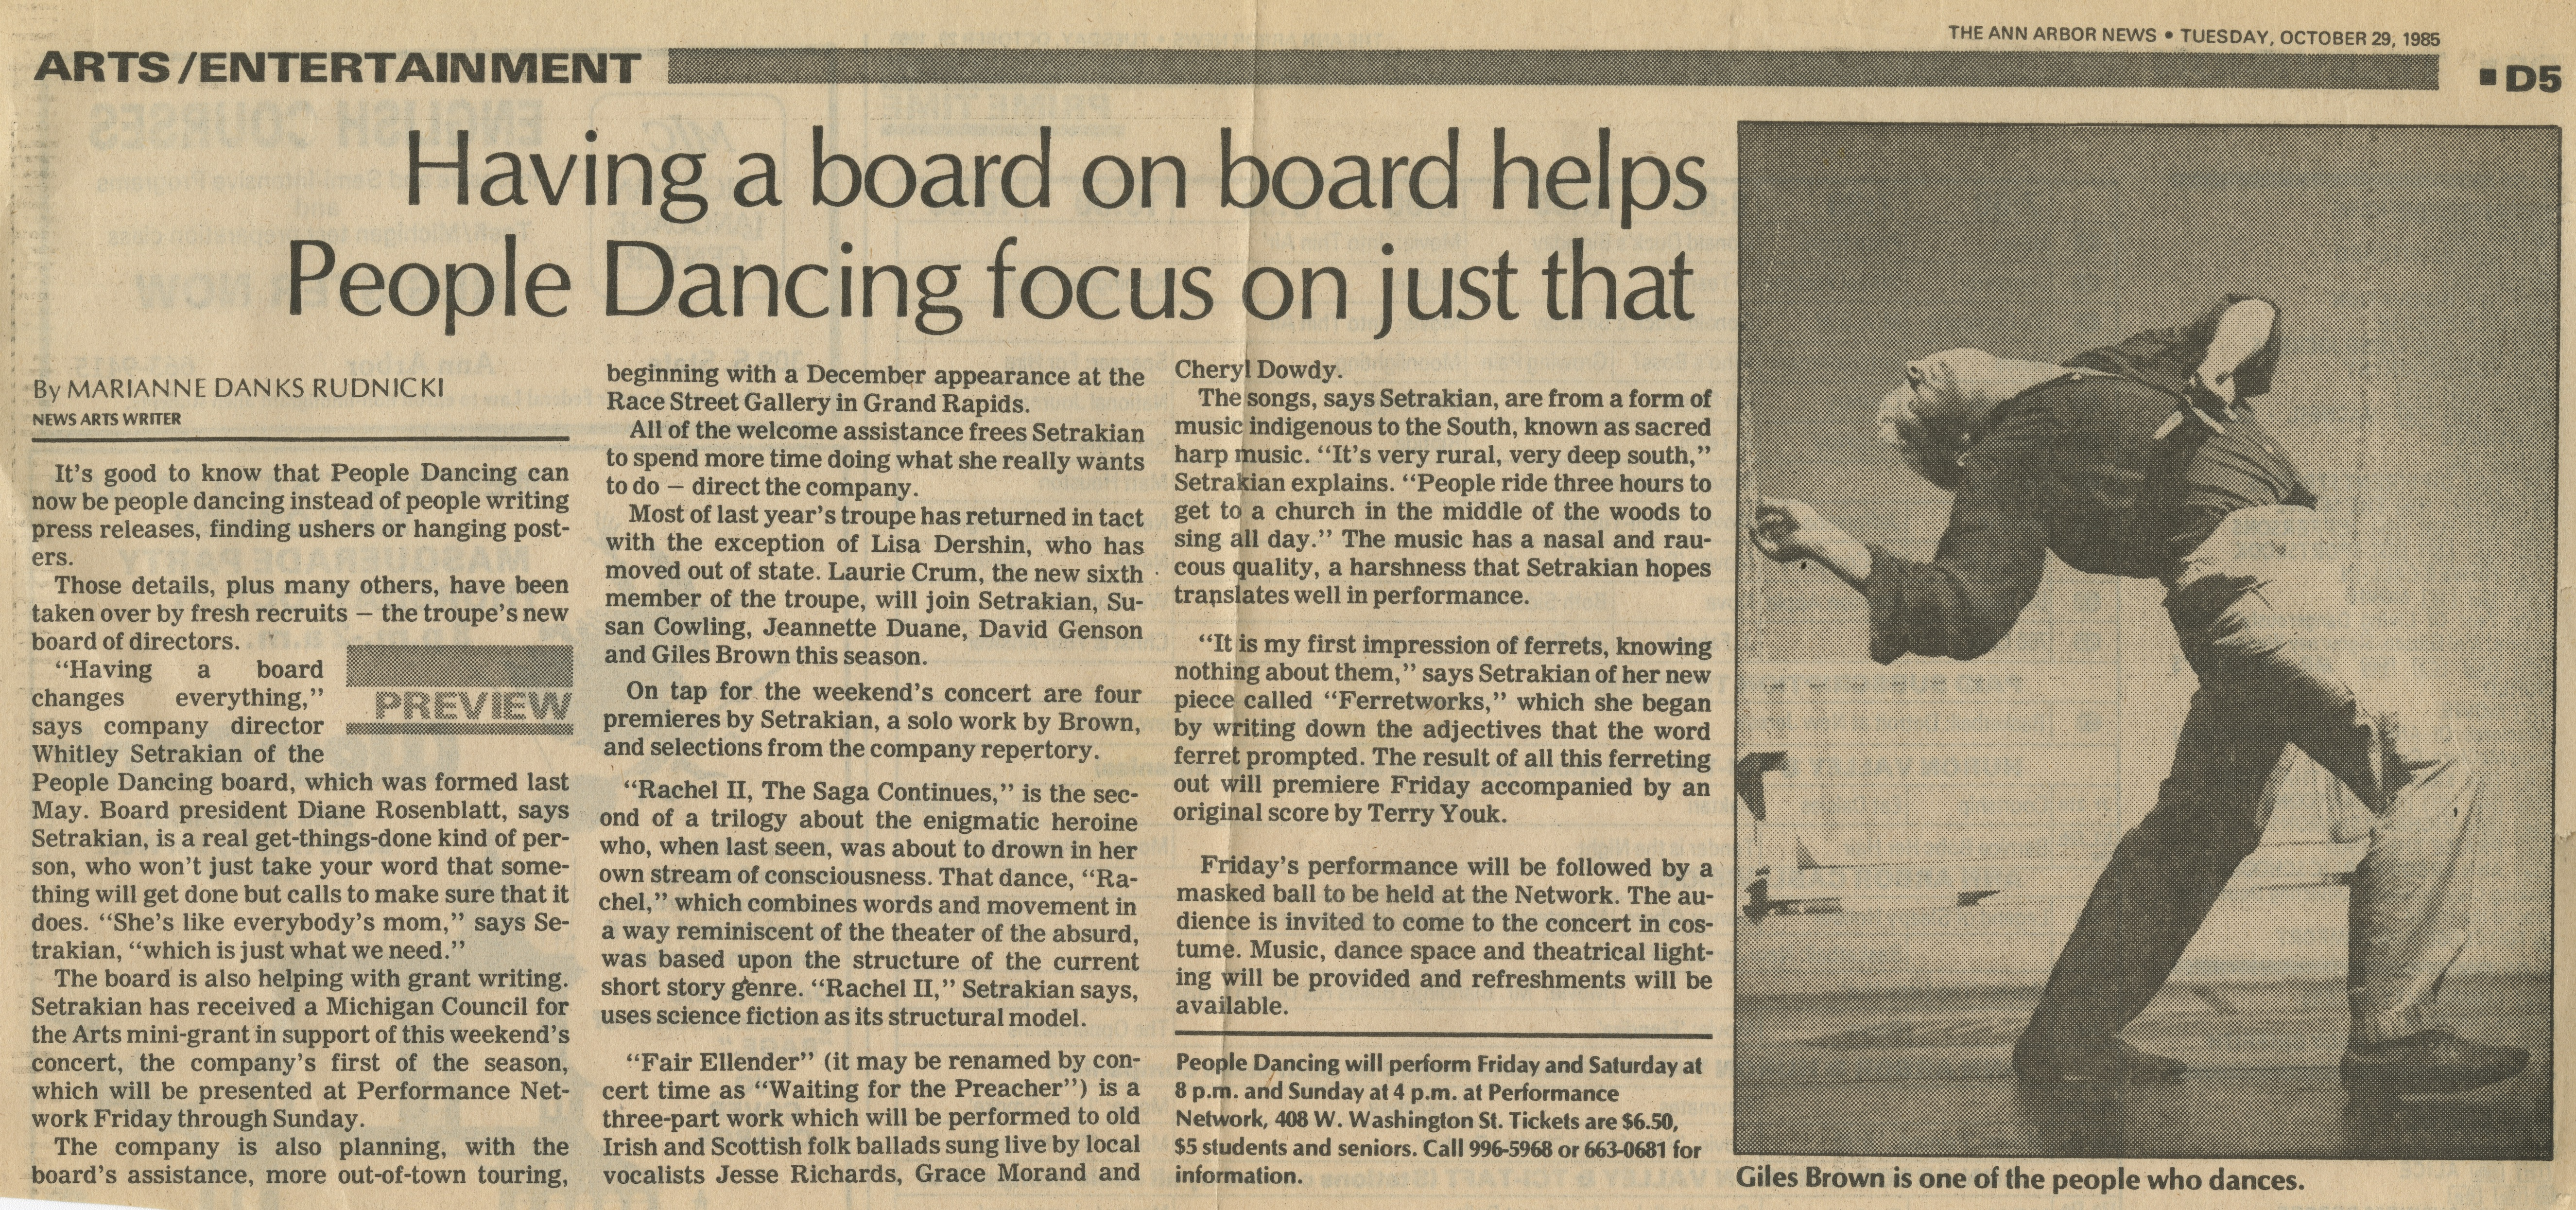 Having a board on board helps People Dancing focus on just that image